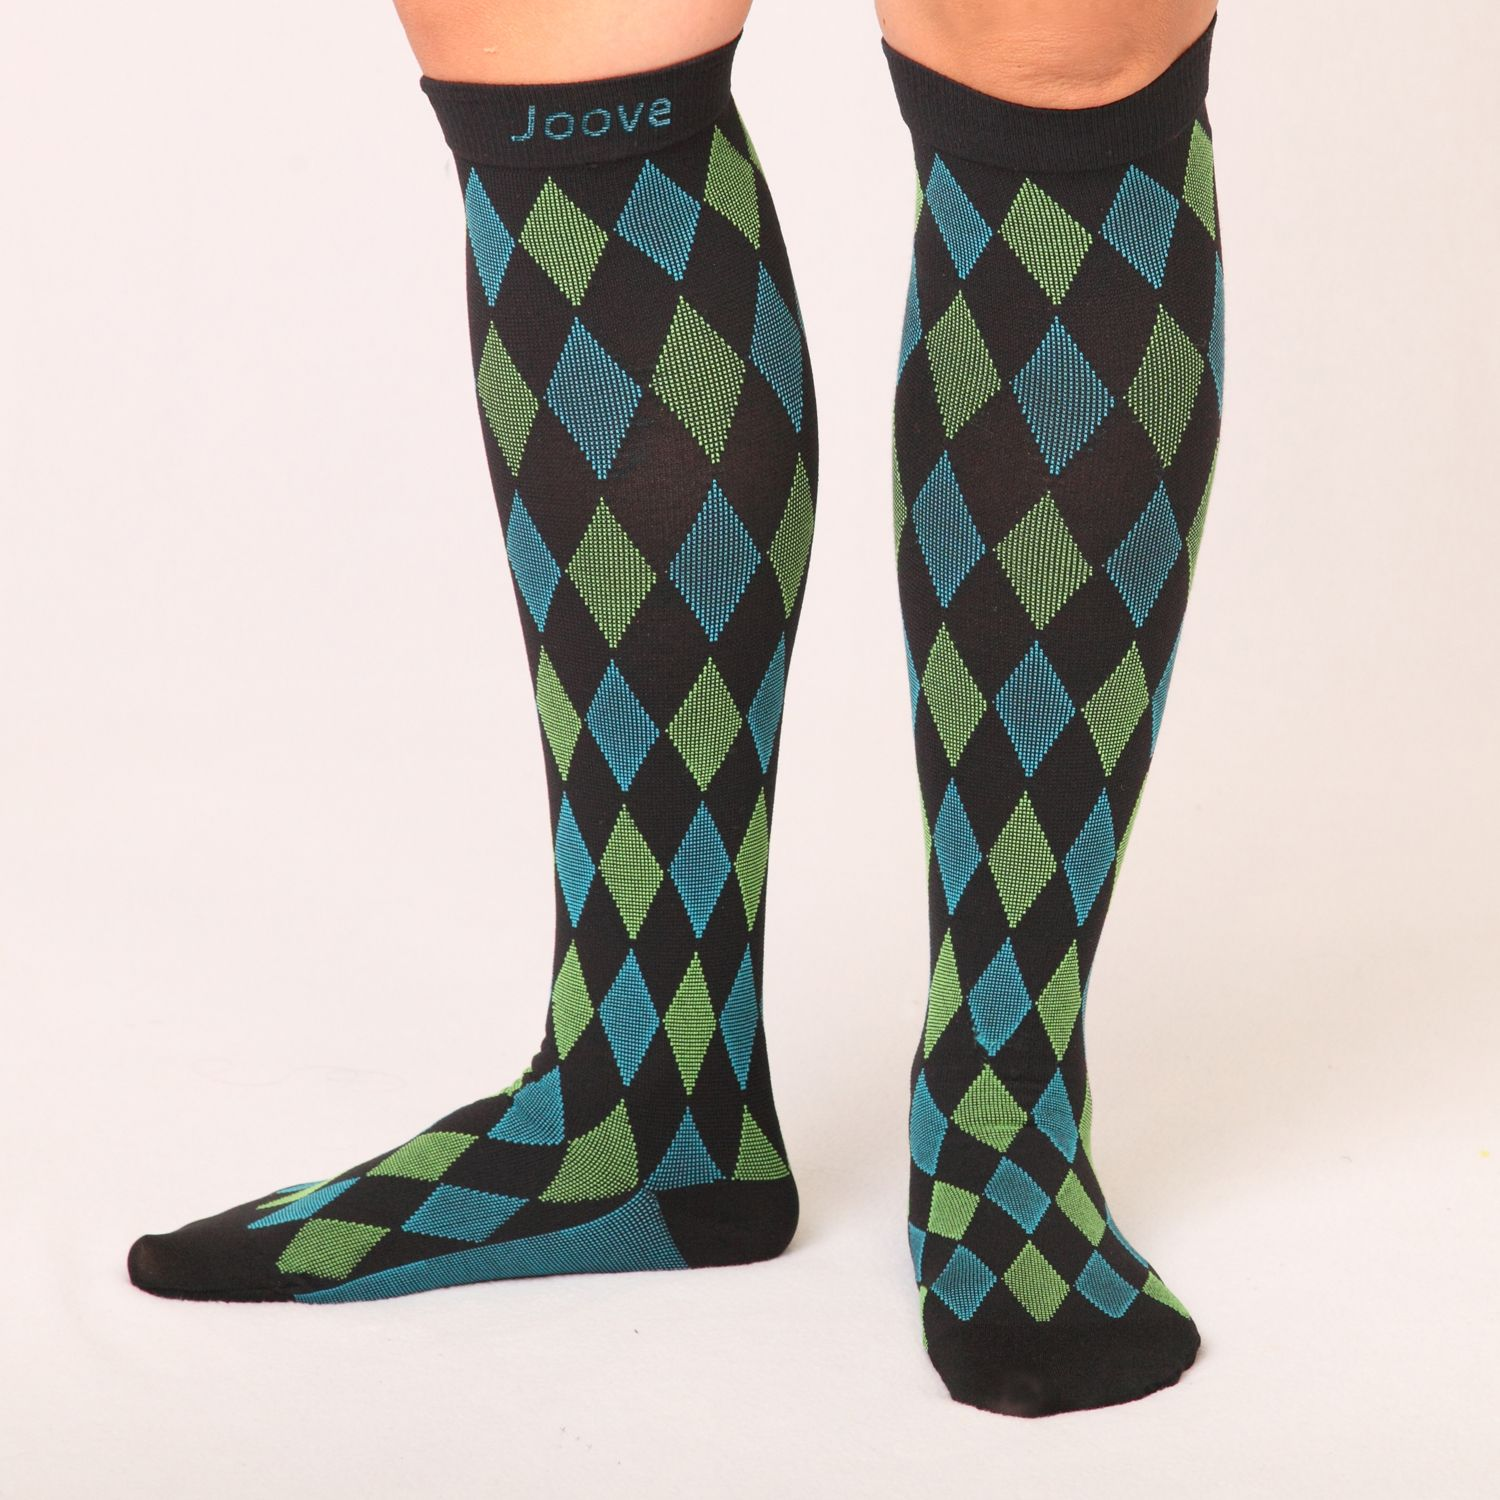 The Dylan in green & blue checkered Joove design. Compression socks 15-20 mmHg